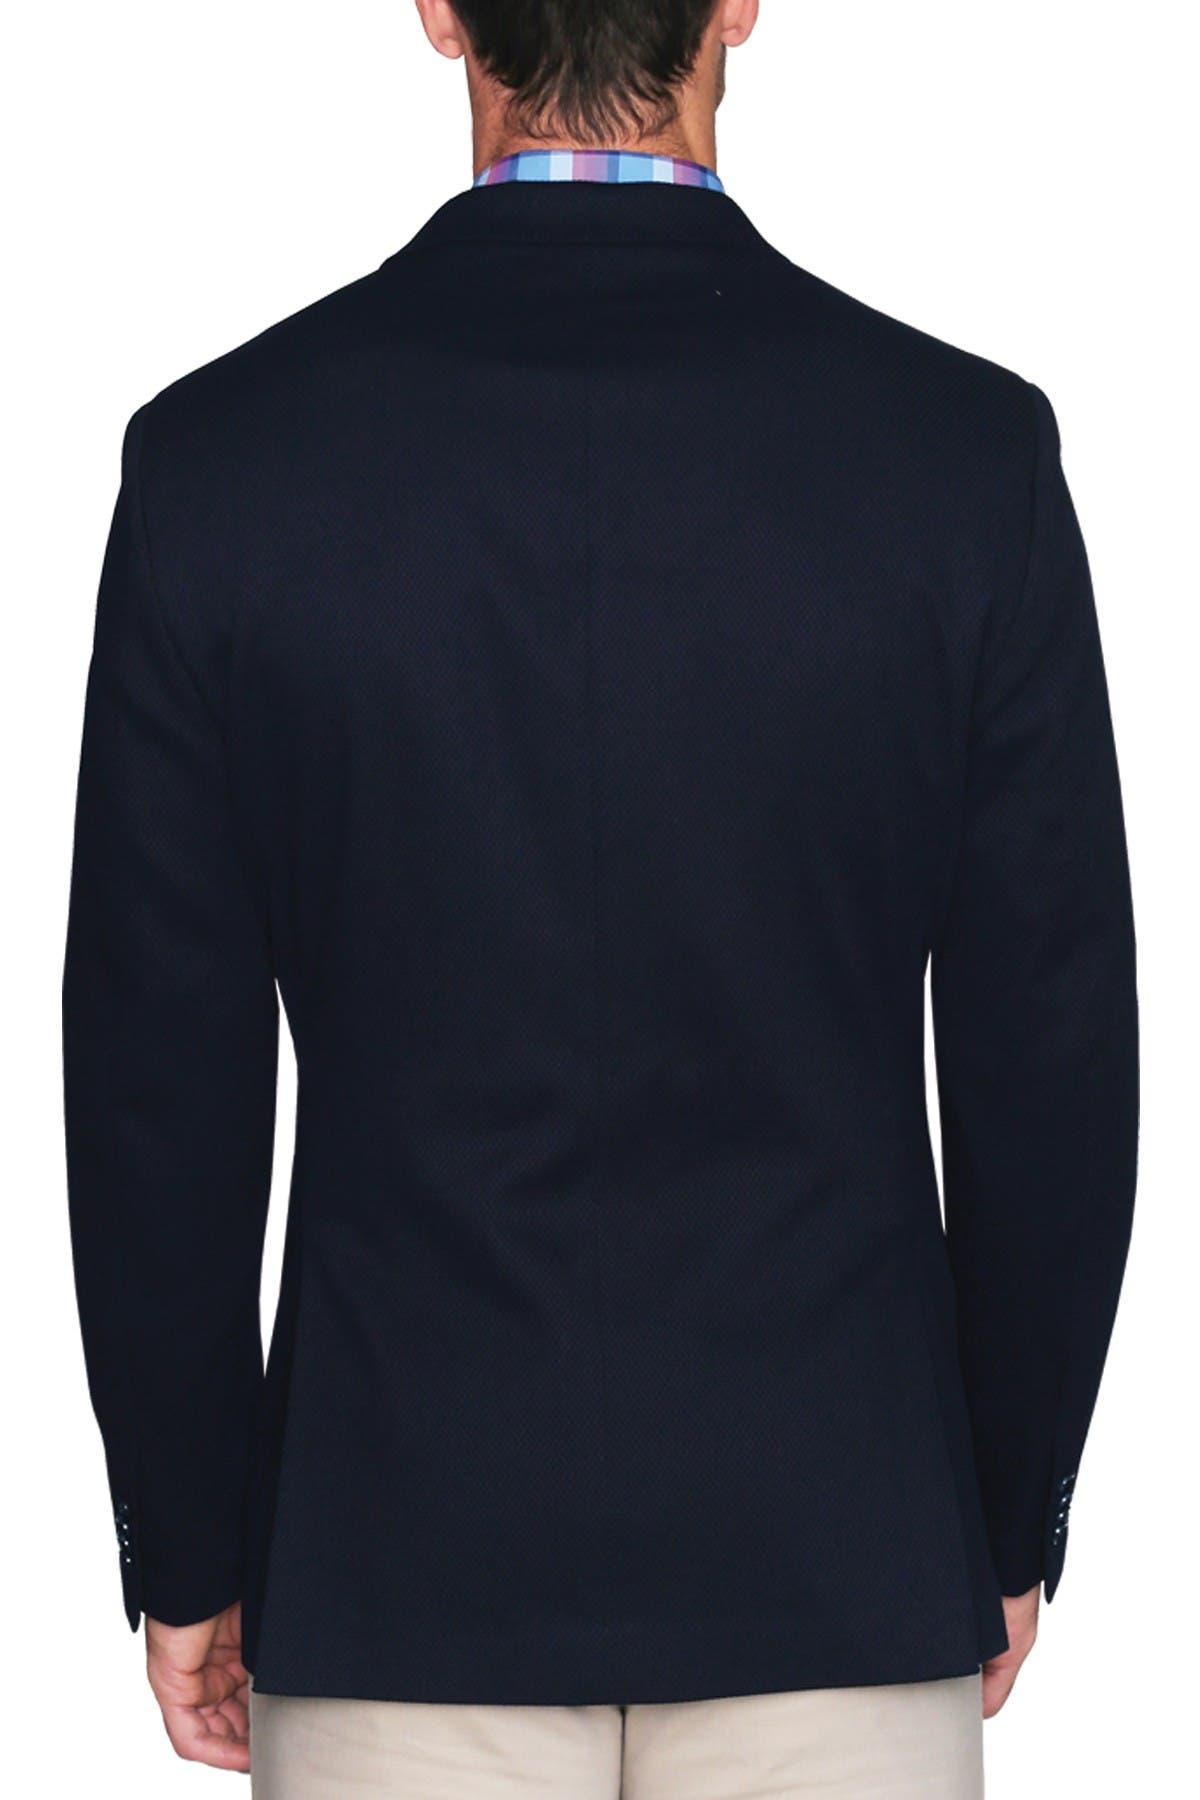 Image of TailorByrd Navy Diamond Textured Two Button Notch Lapel Modern Fit Sport Coat